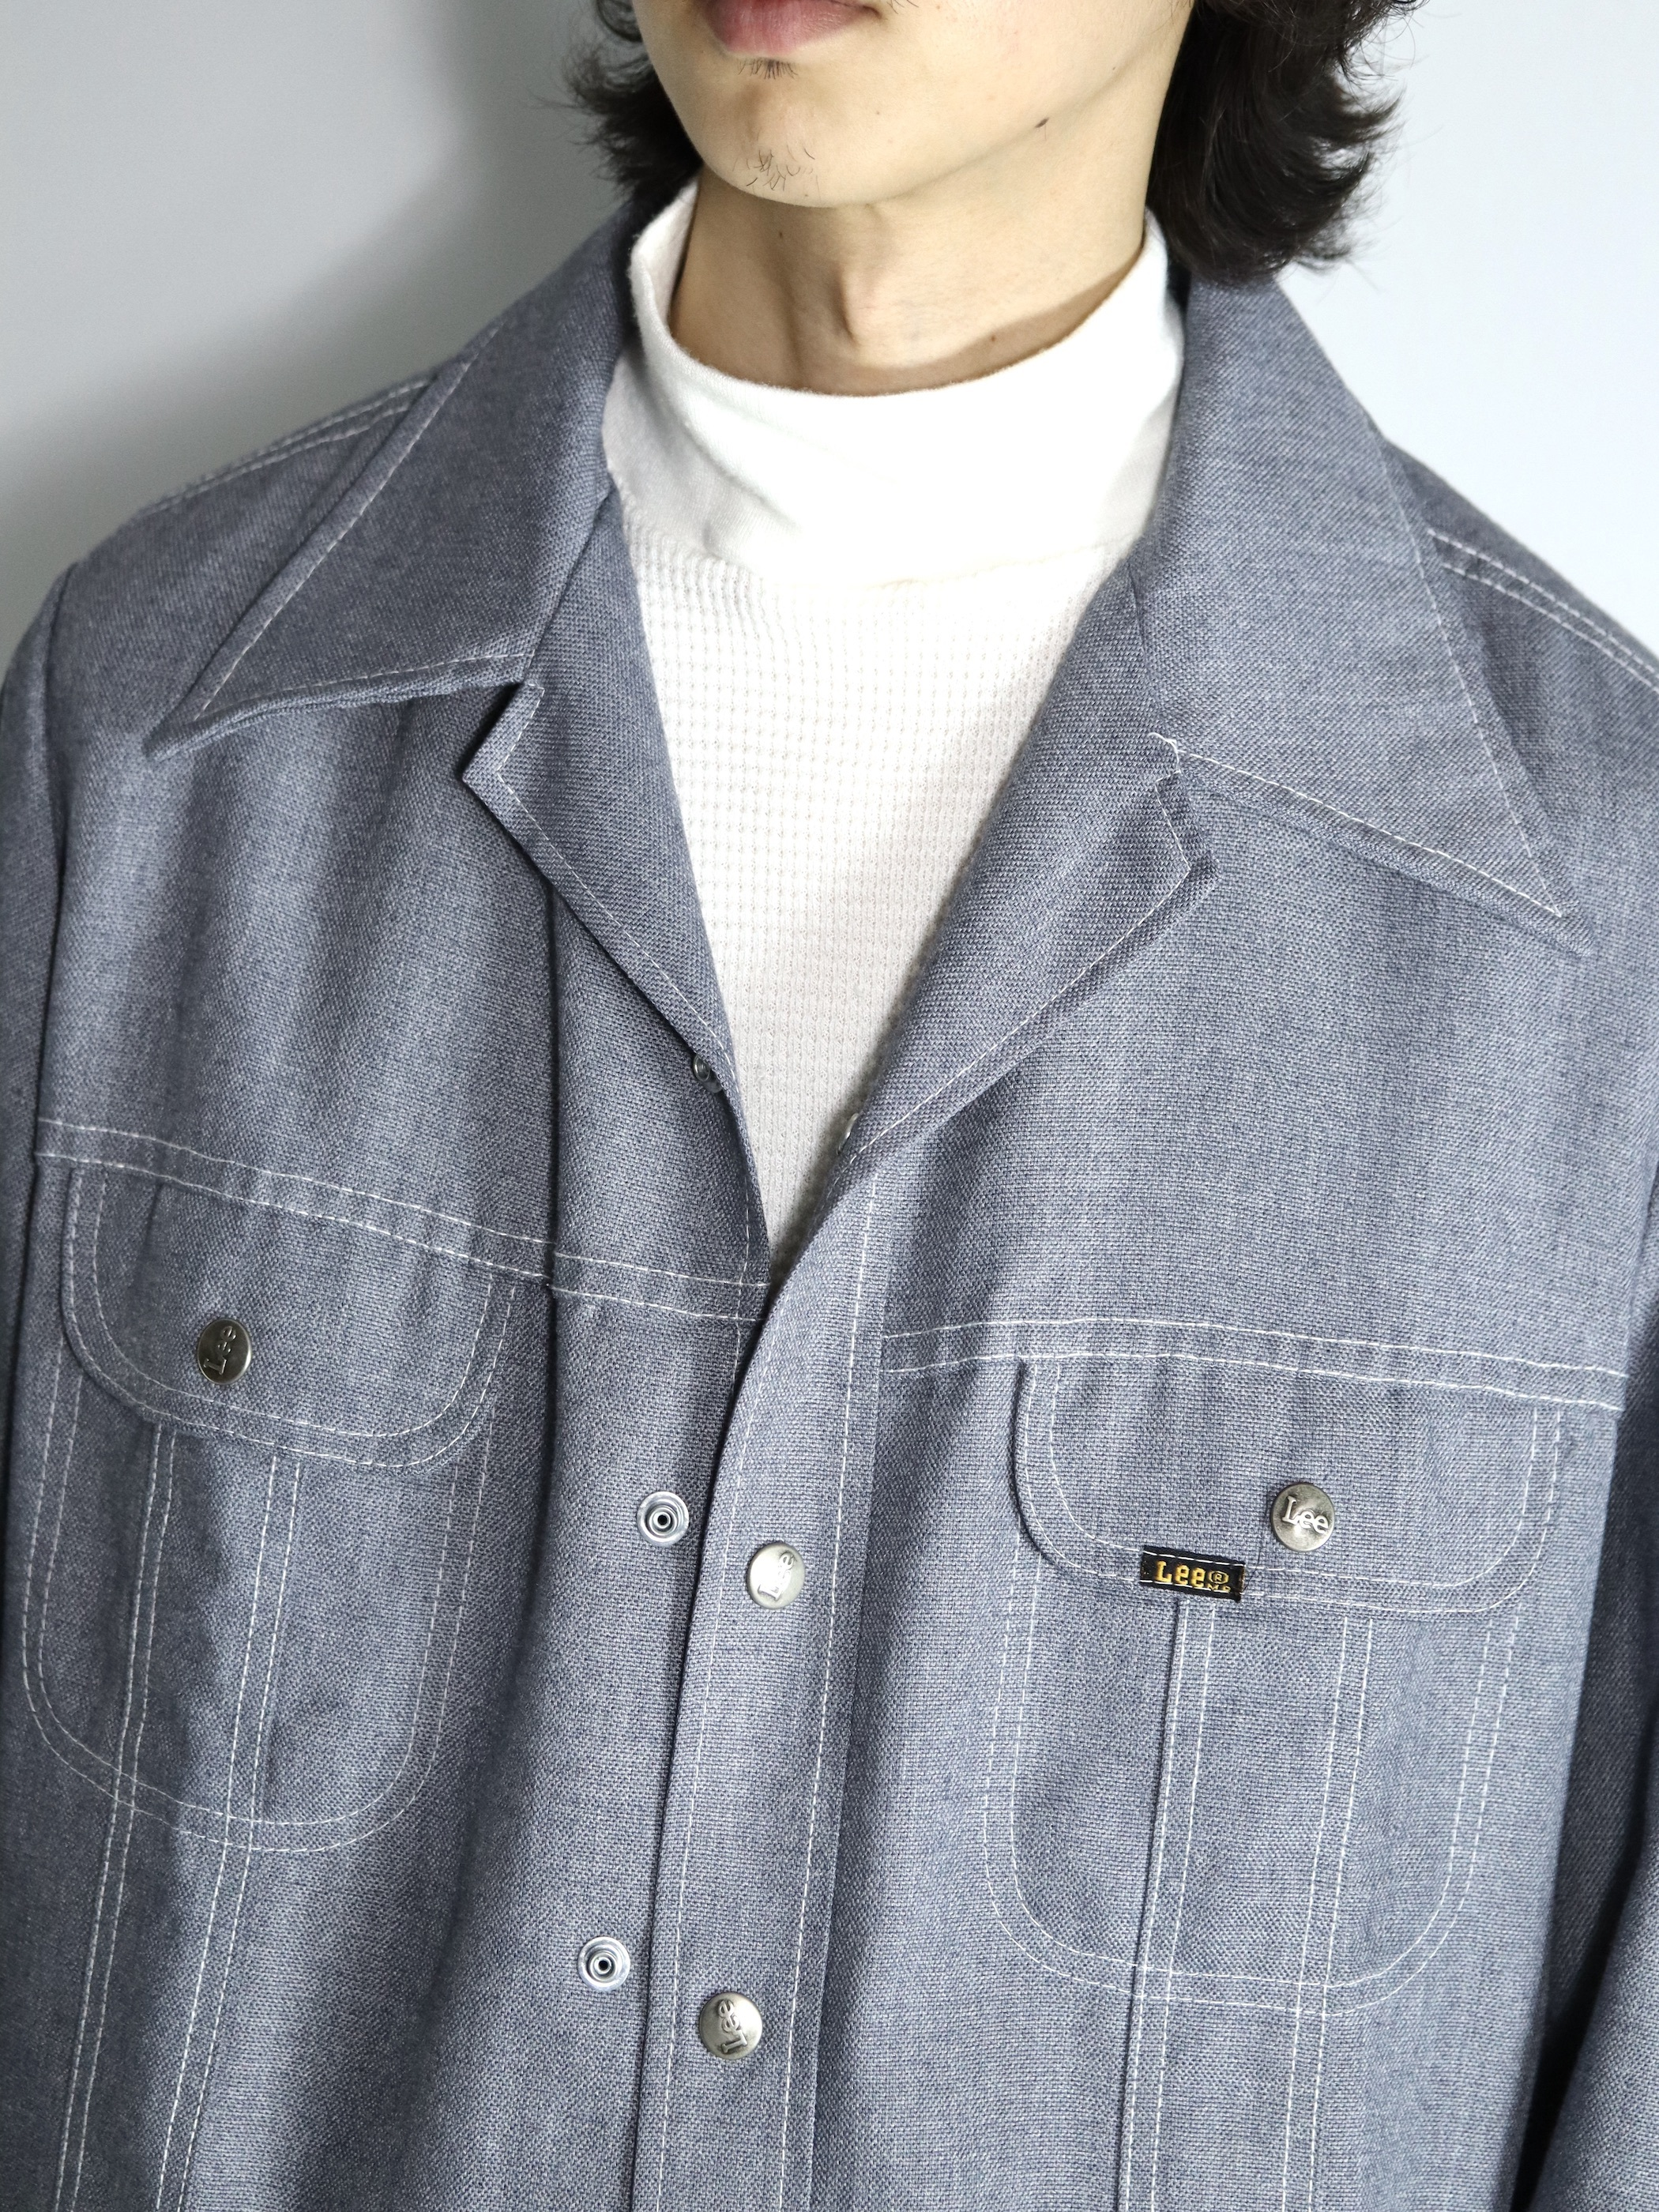 1970's Lee Polyester × Cotton Shirts Jacket